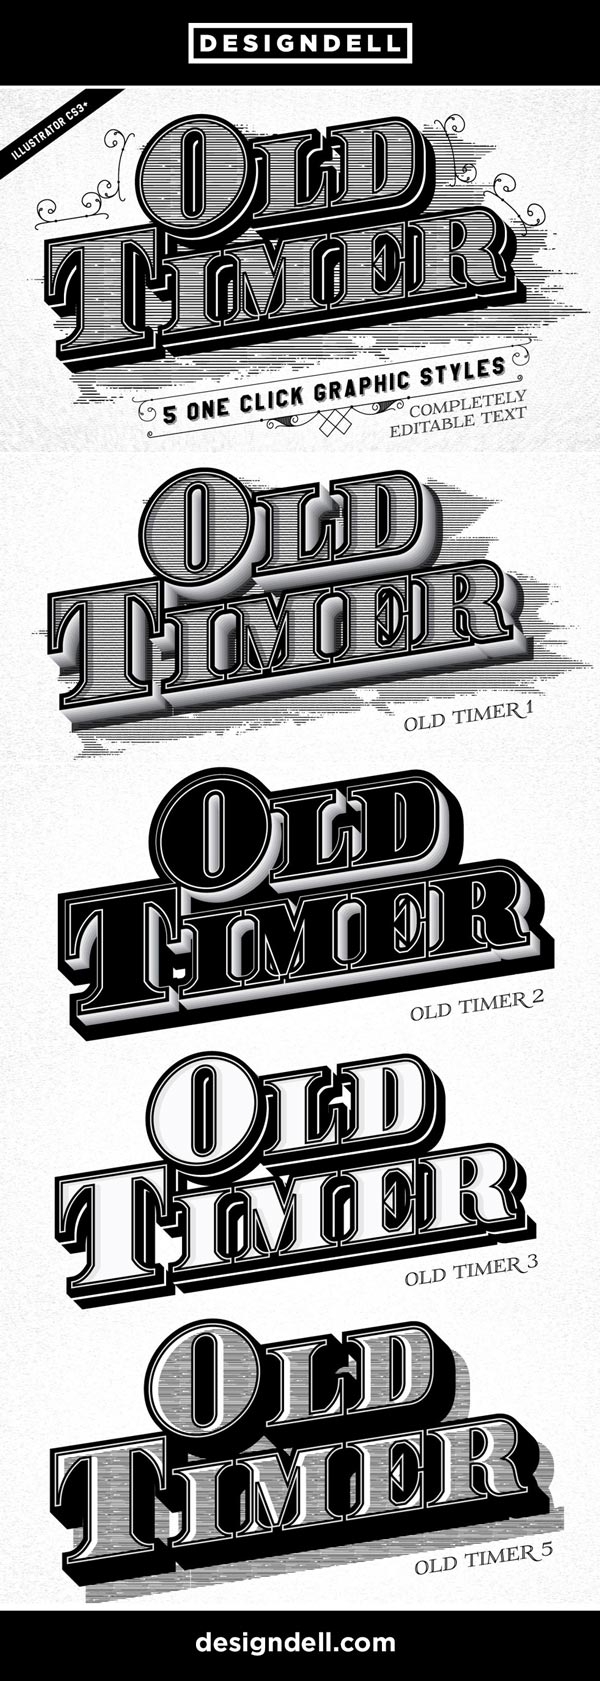 Old Timer Vintage Illustrator Text Effects #Typography #Victorian